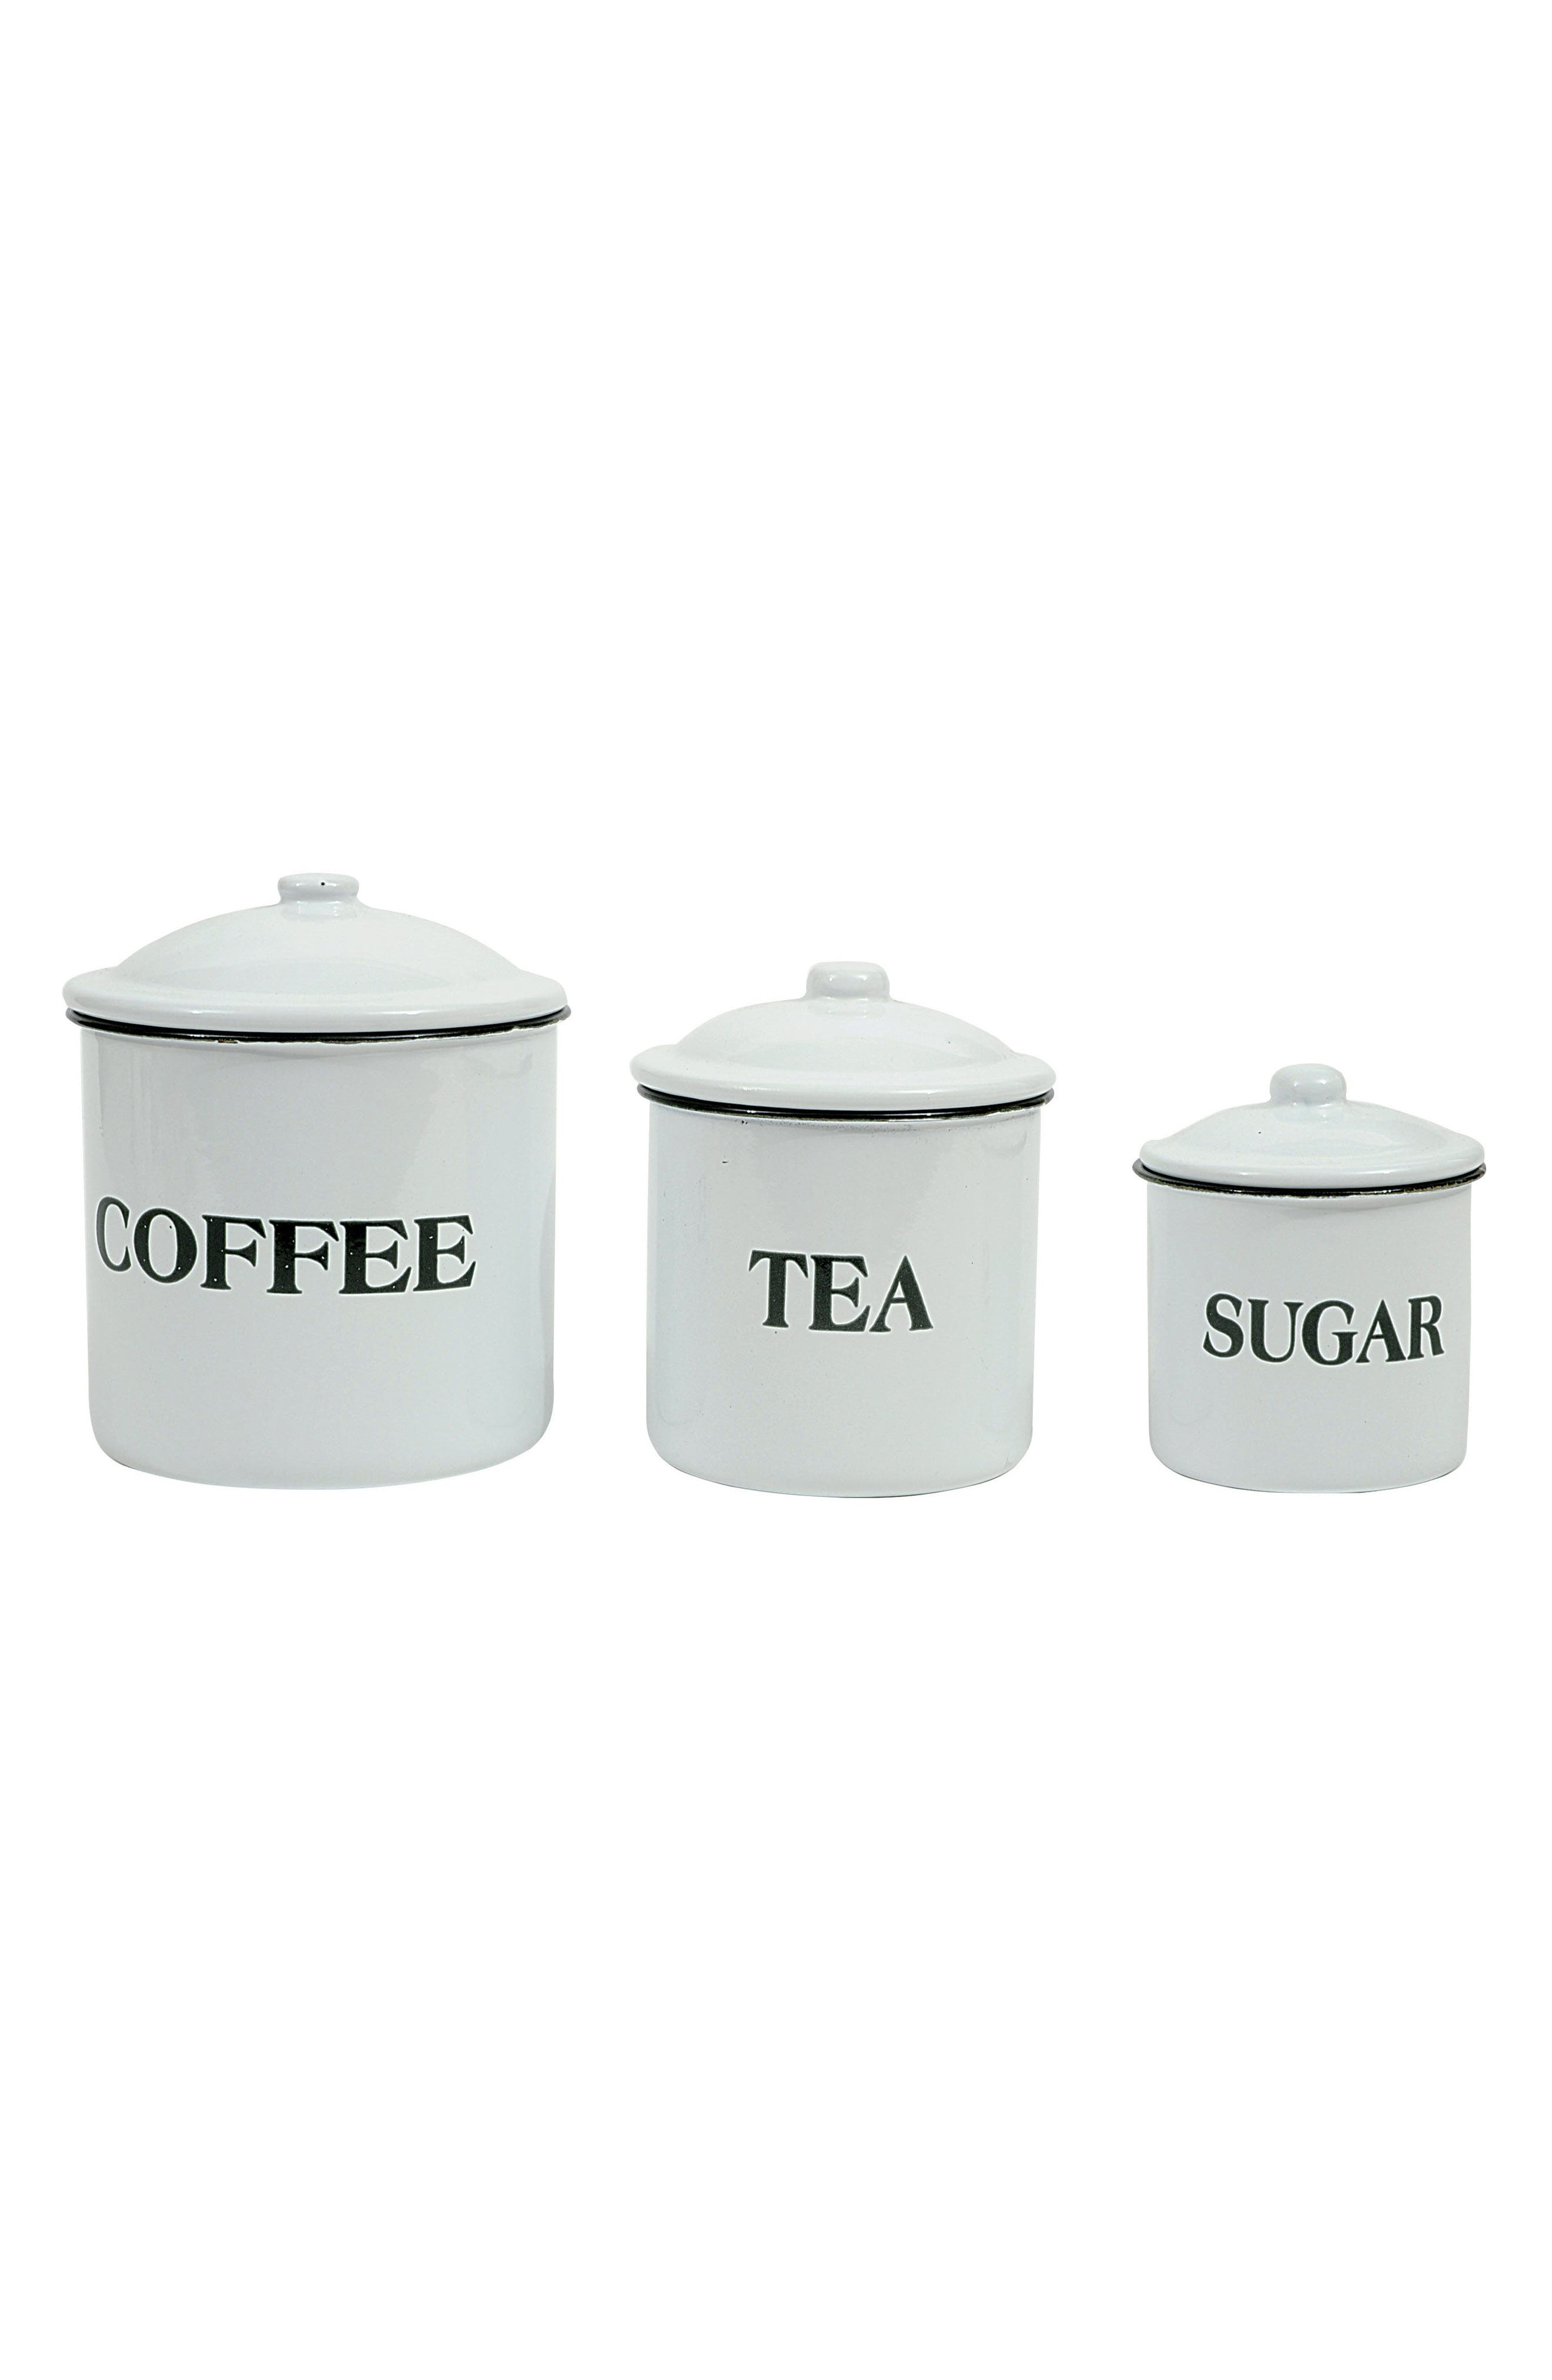 Set of 3 Enamel Containers,                             Main thumbnail 1, color,                             White